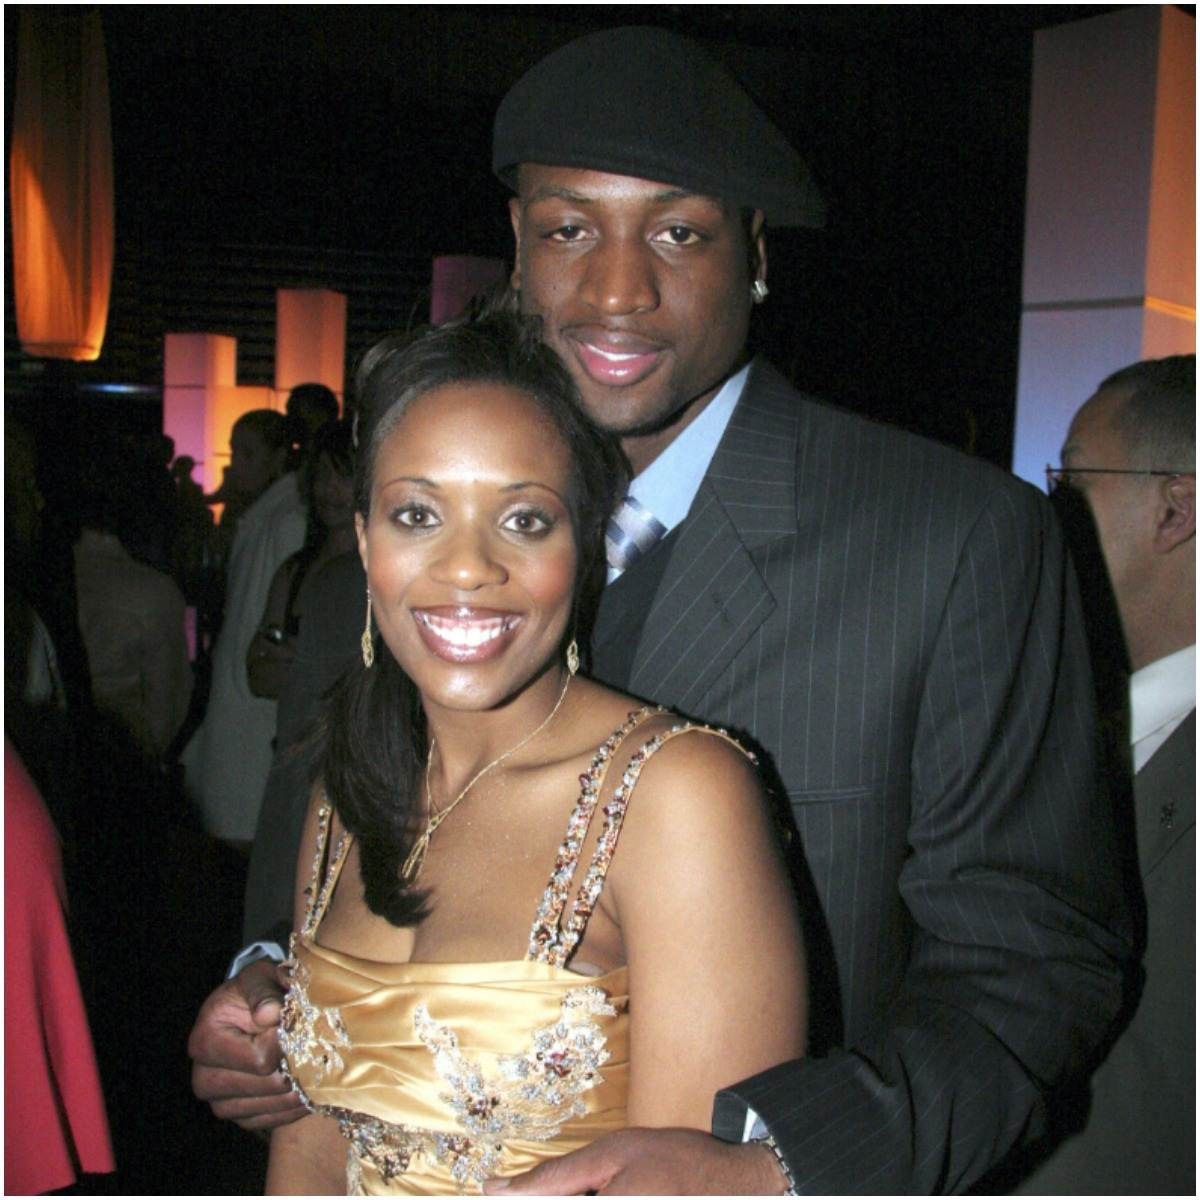 Siohvaughn Funches and her husband Dwyane Wade